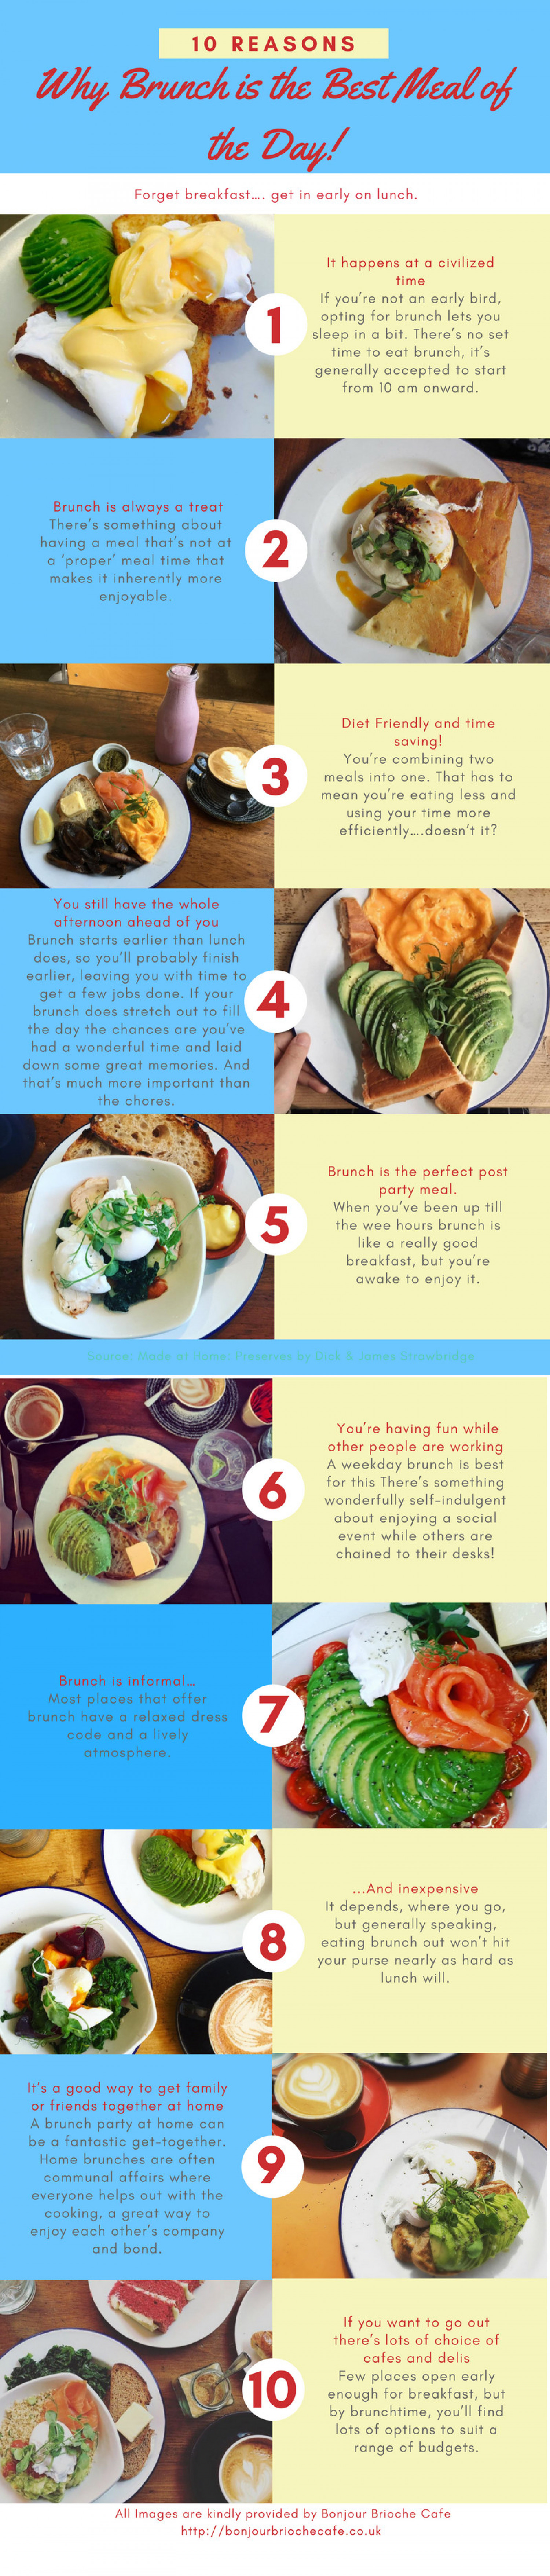 10 Reasons Why Brunch Is The Best Meal Of The Day! Infographic